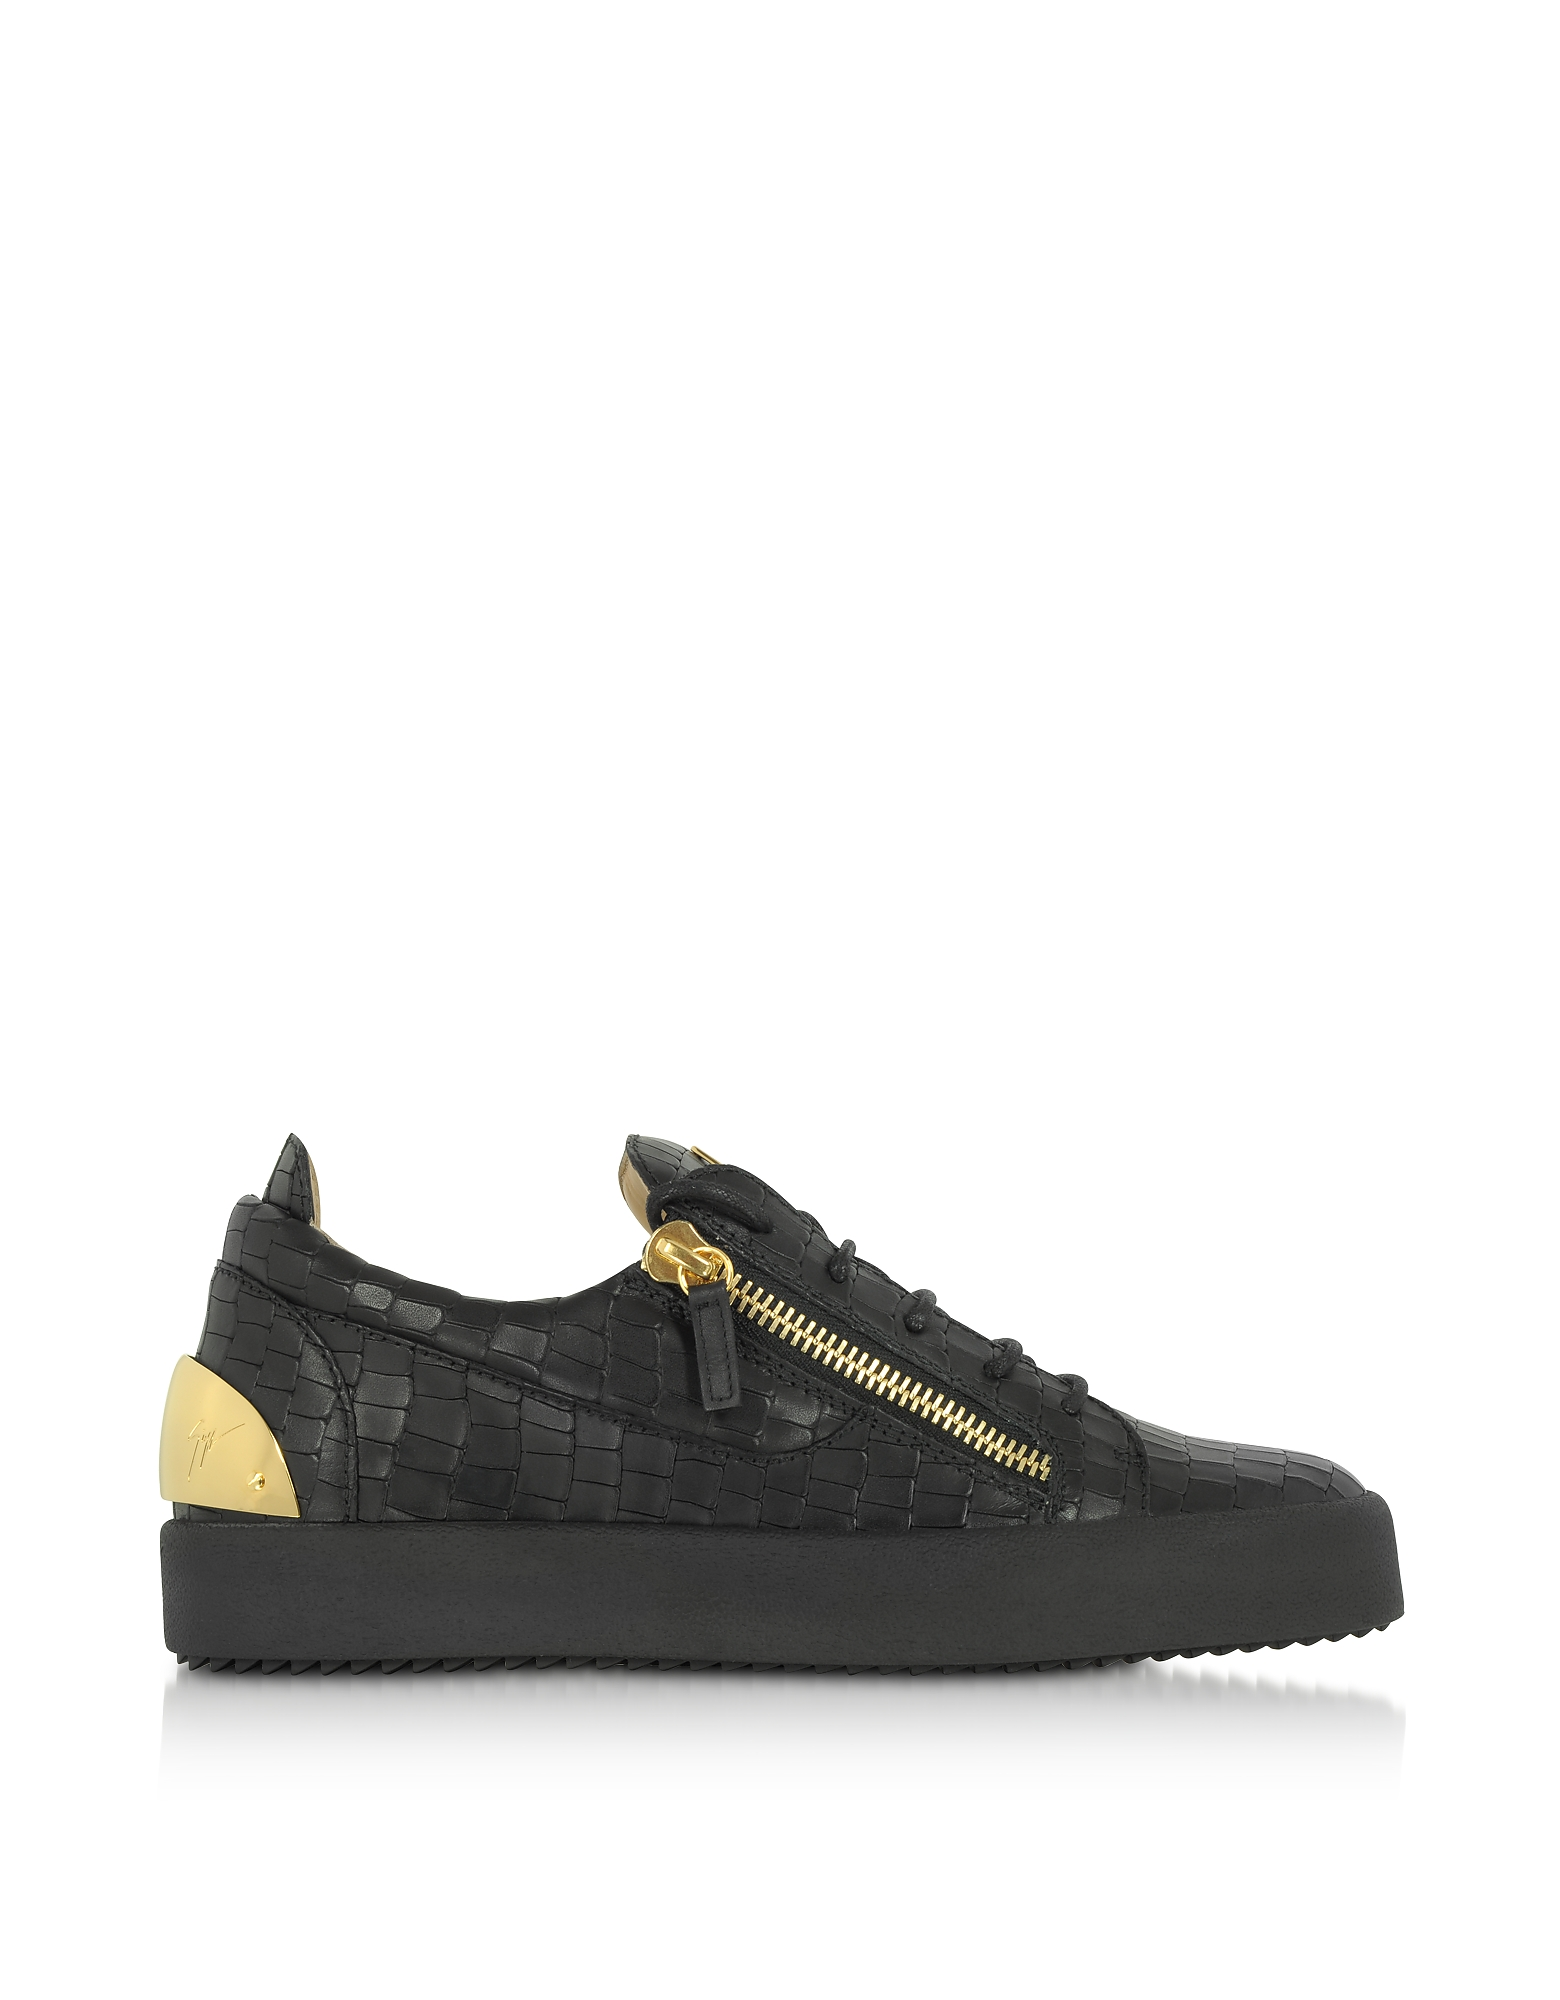 Giuseppe Zanotti Shoes, Black Embossed Croco Leather Low Top Men's Sneakers